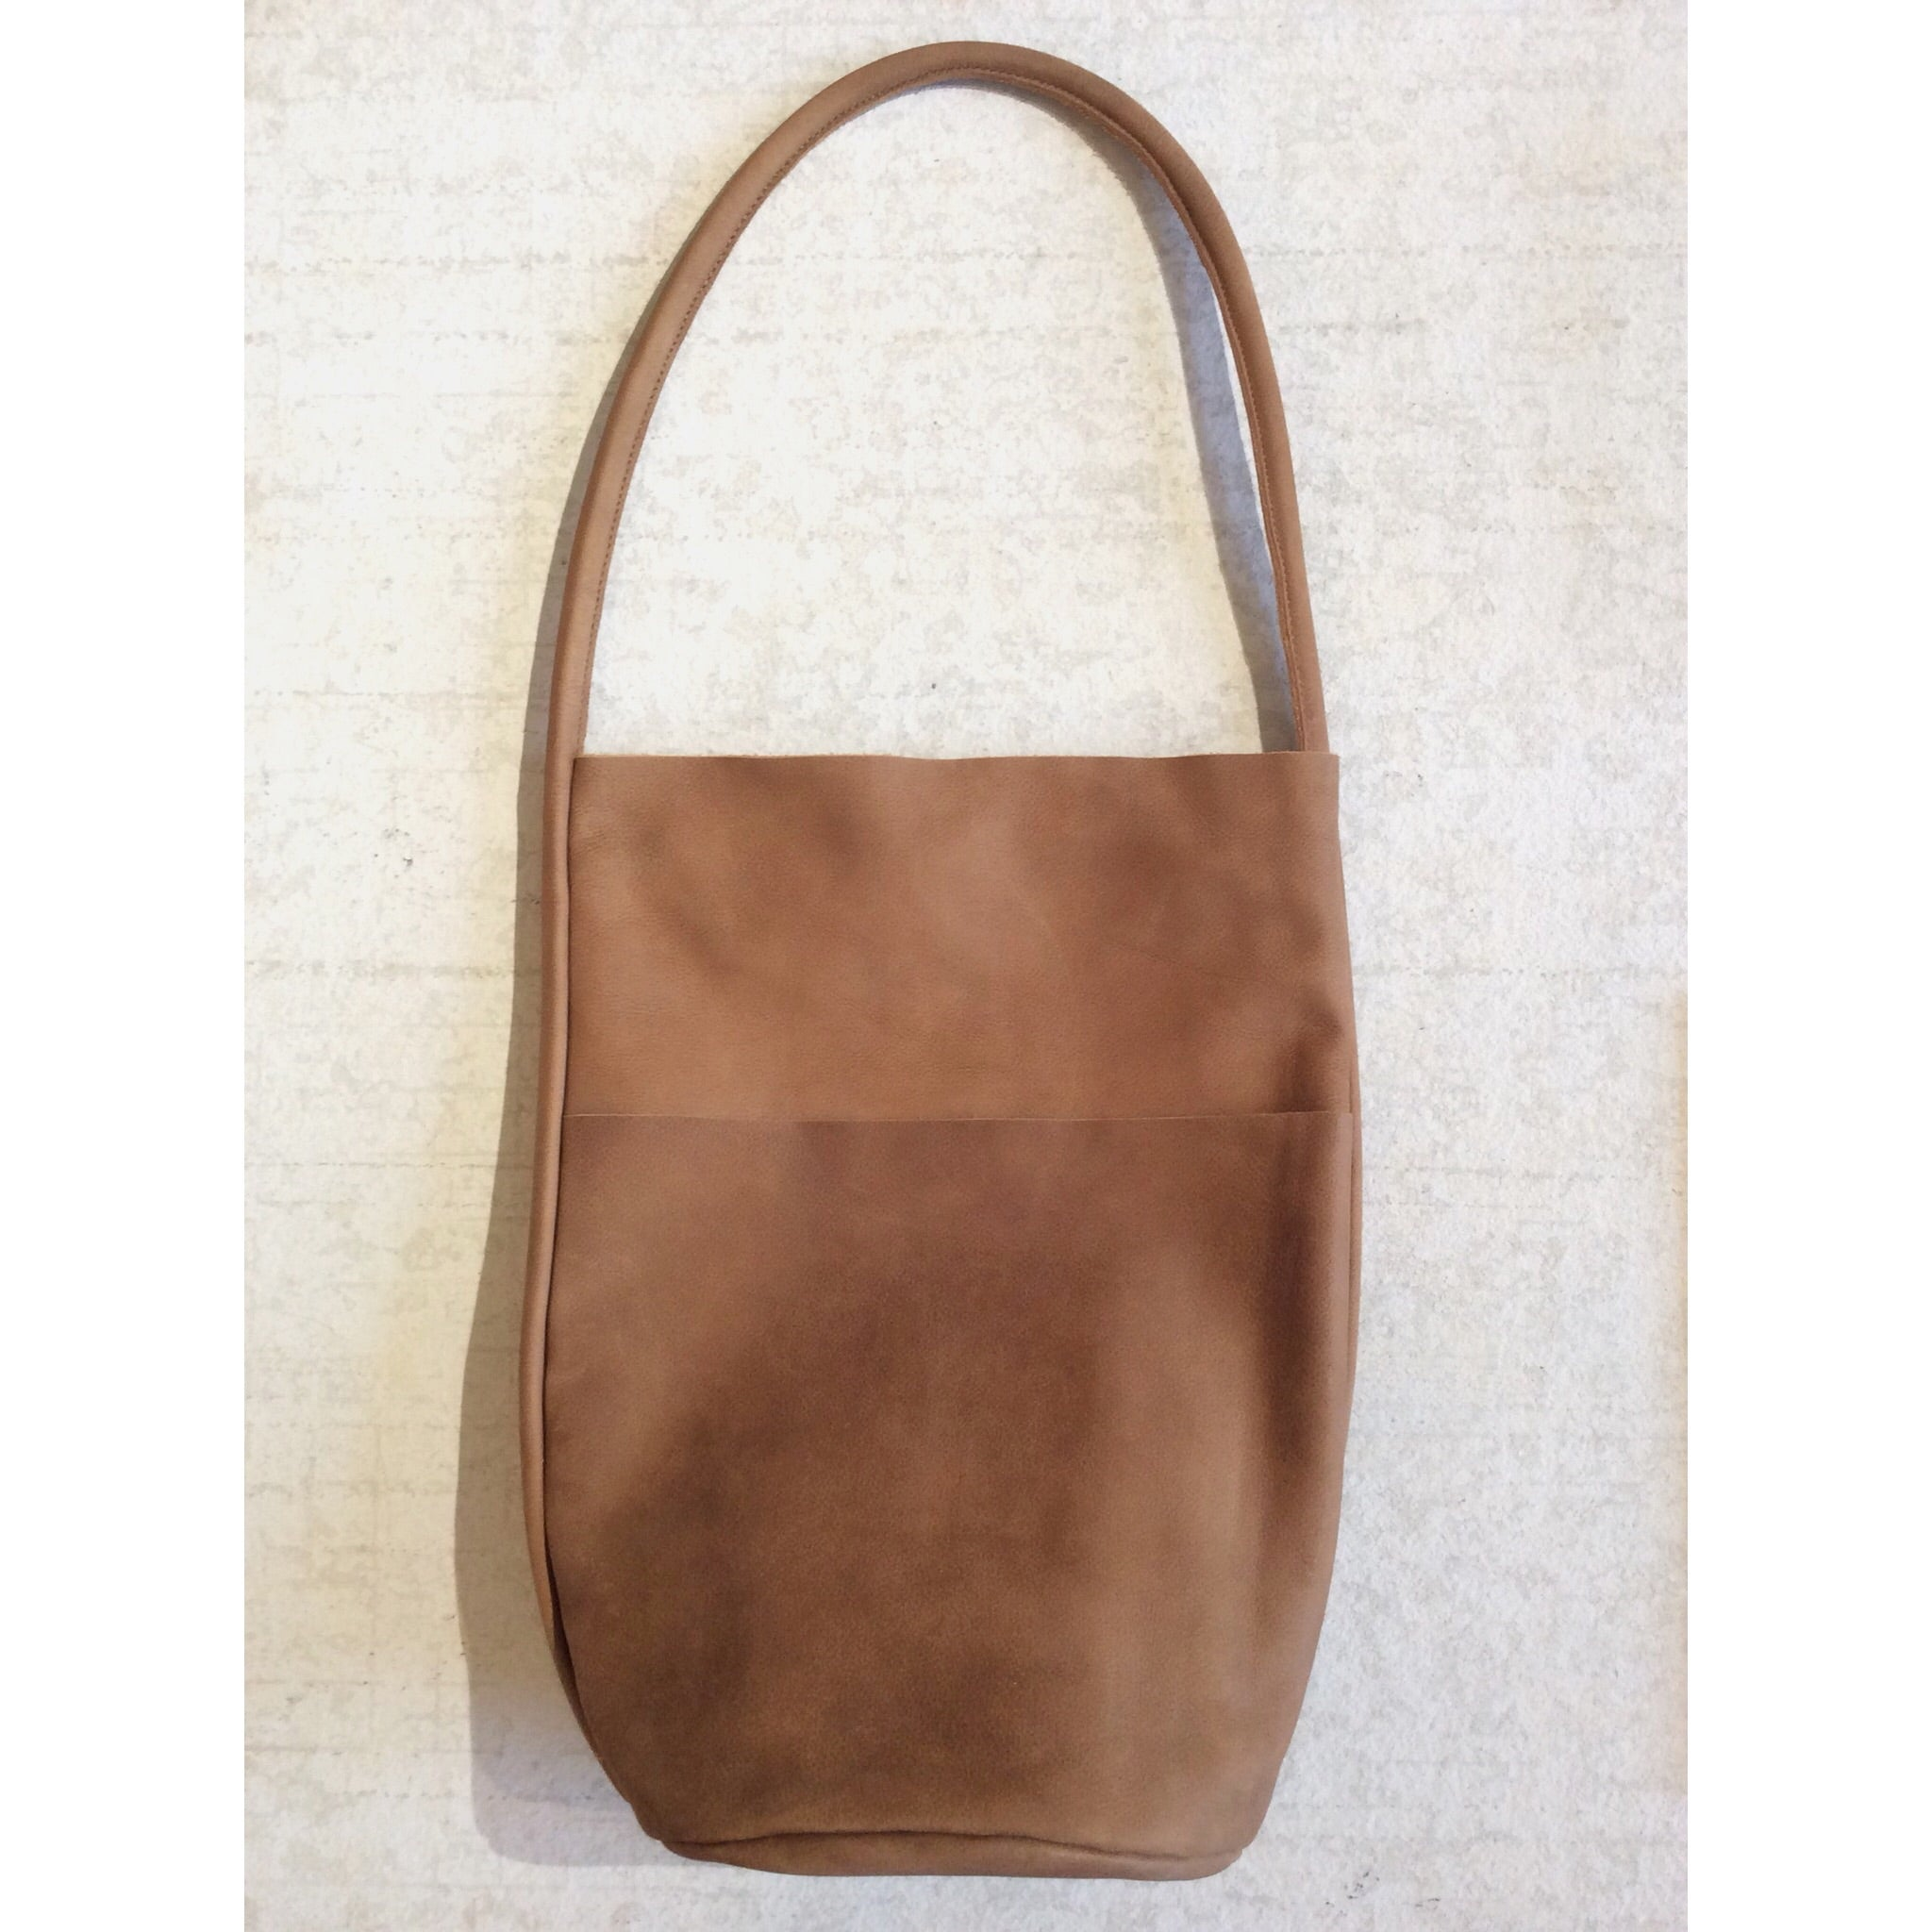 BODY SCULPTURES LEATHER SHOPPER BAG / BROWN SUEDE